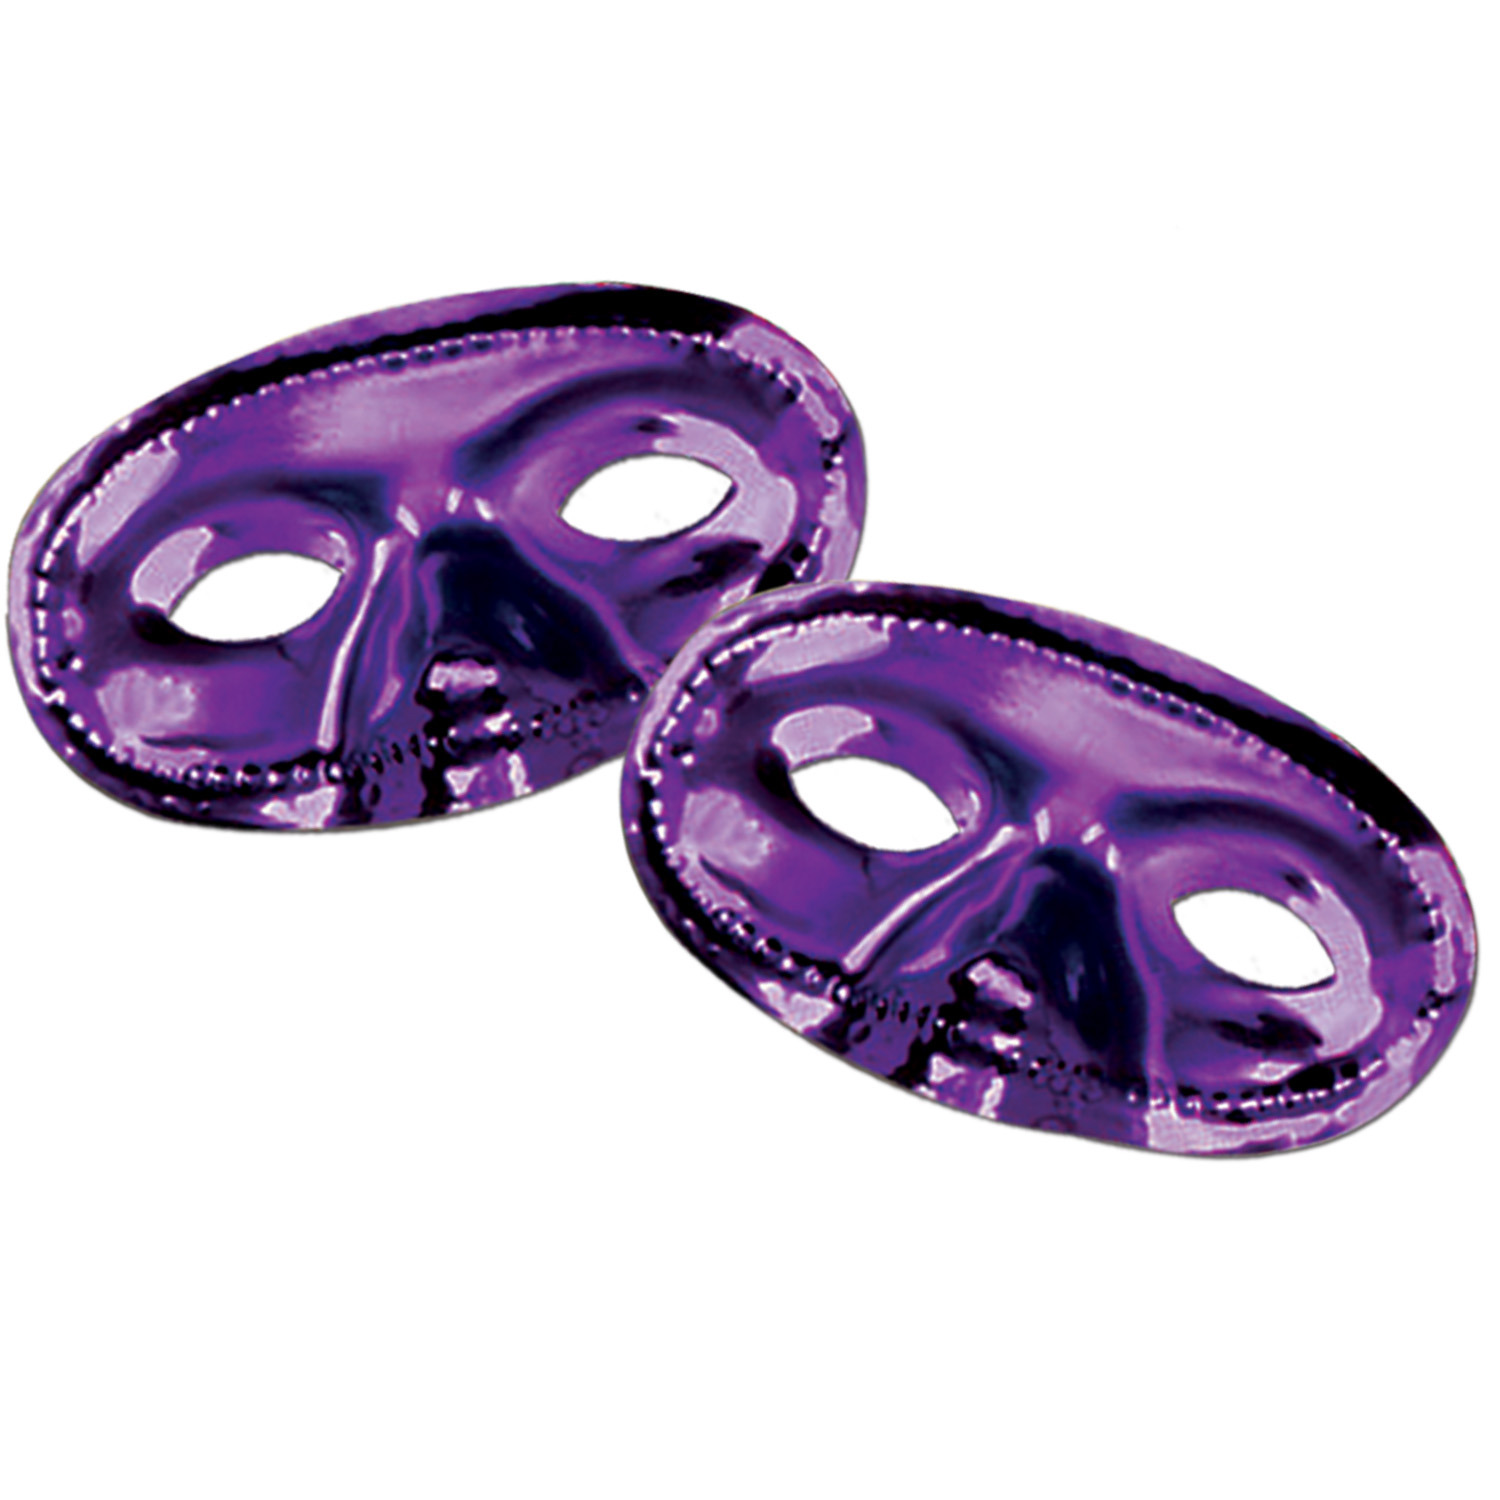 Metallic Half Mask  purple, metallic, half, mask, mardi gras, masquerade, party